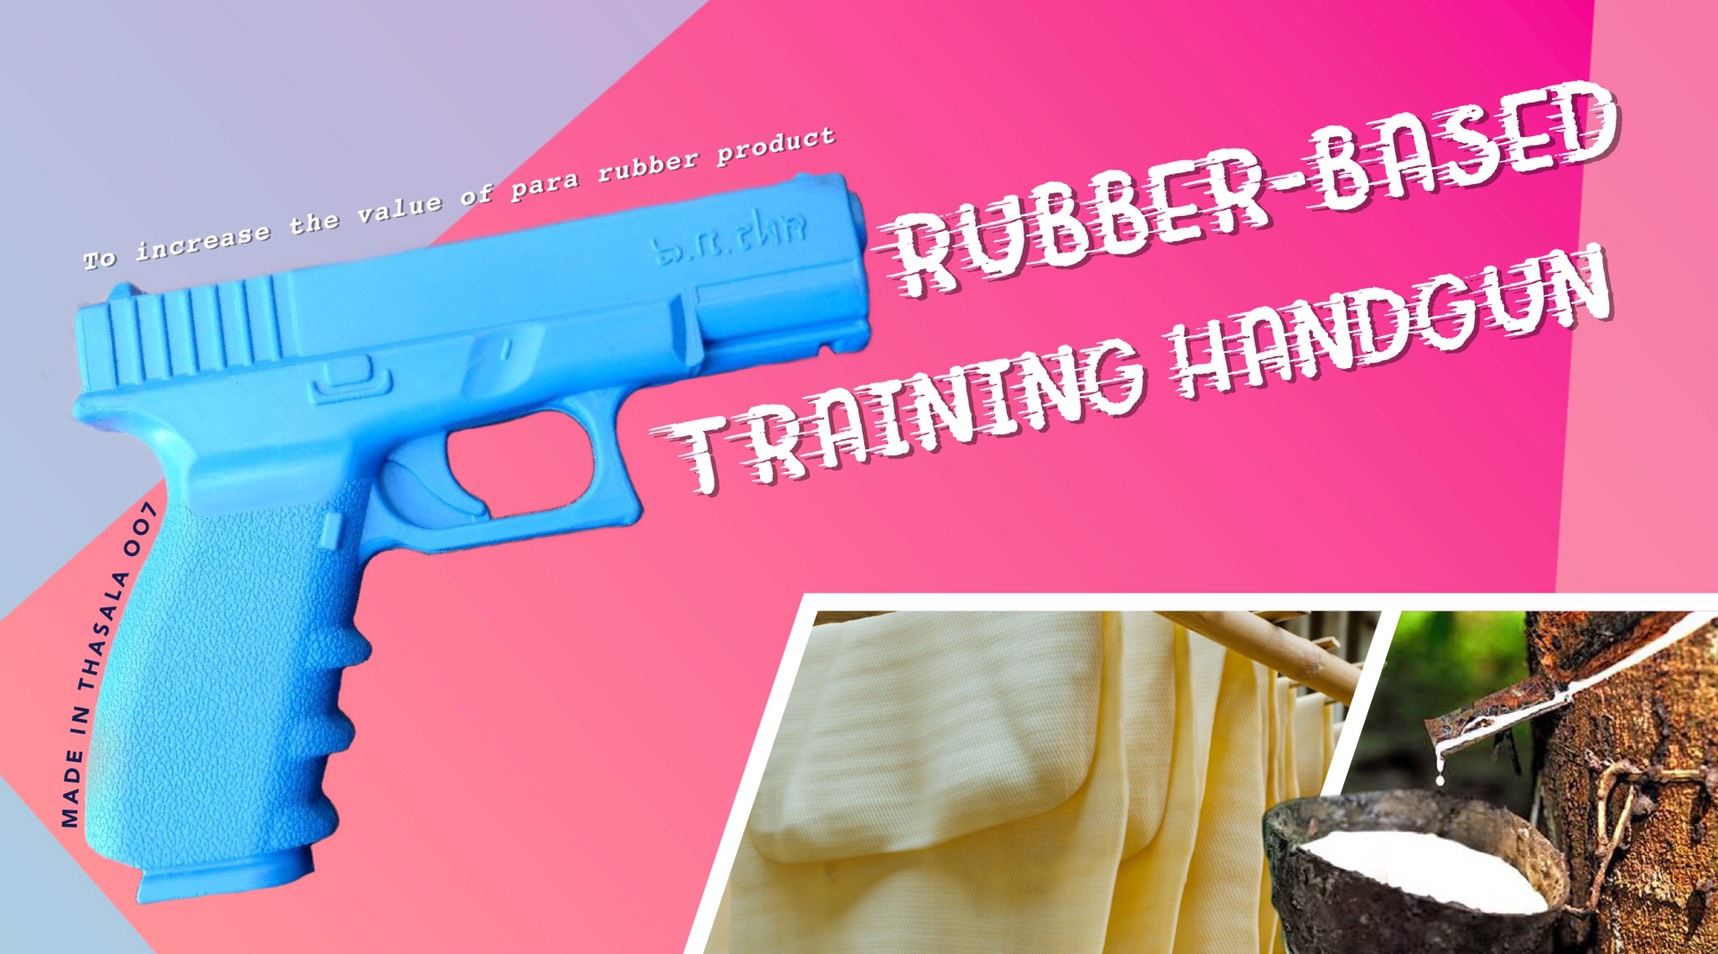 Rubber-Based Training Handgun ‒ to increase value of para rubber product